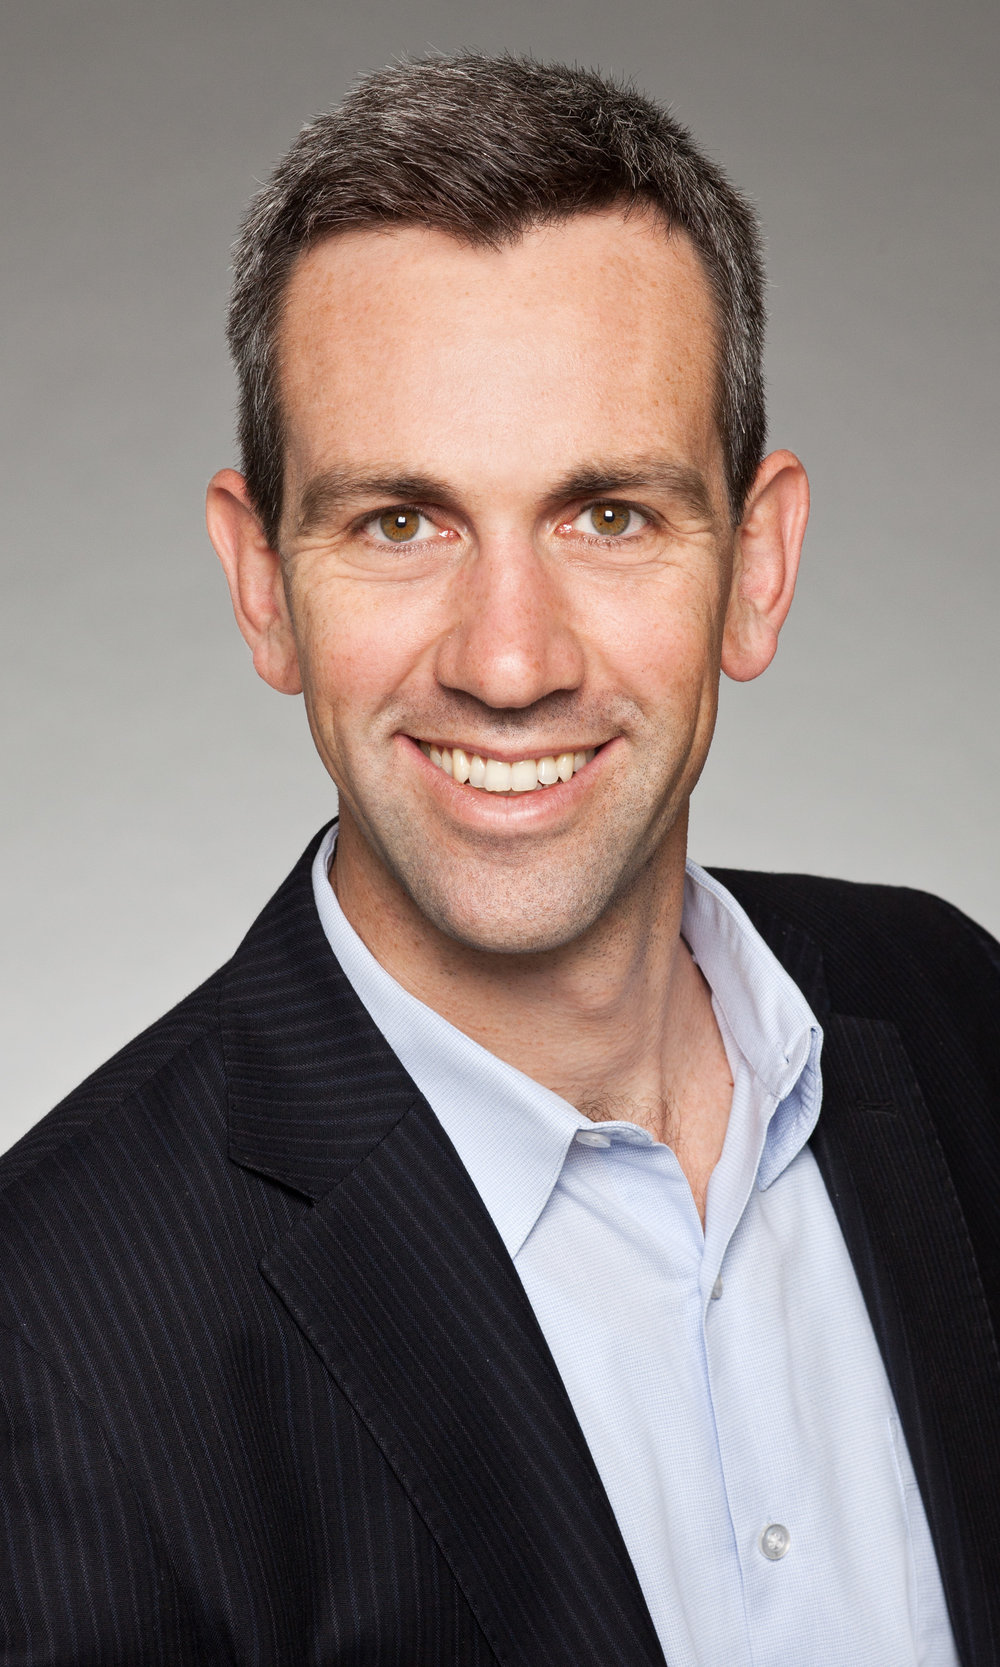 CarbonCure Founder and CEO Robert Niven